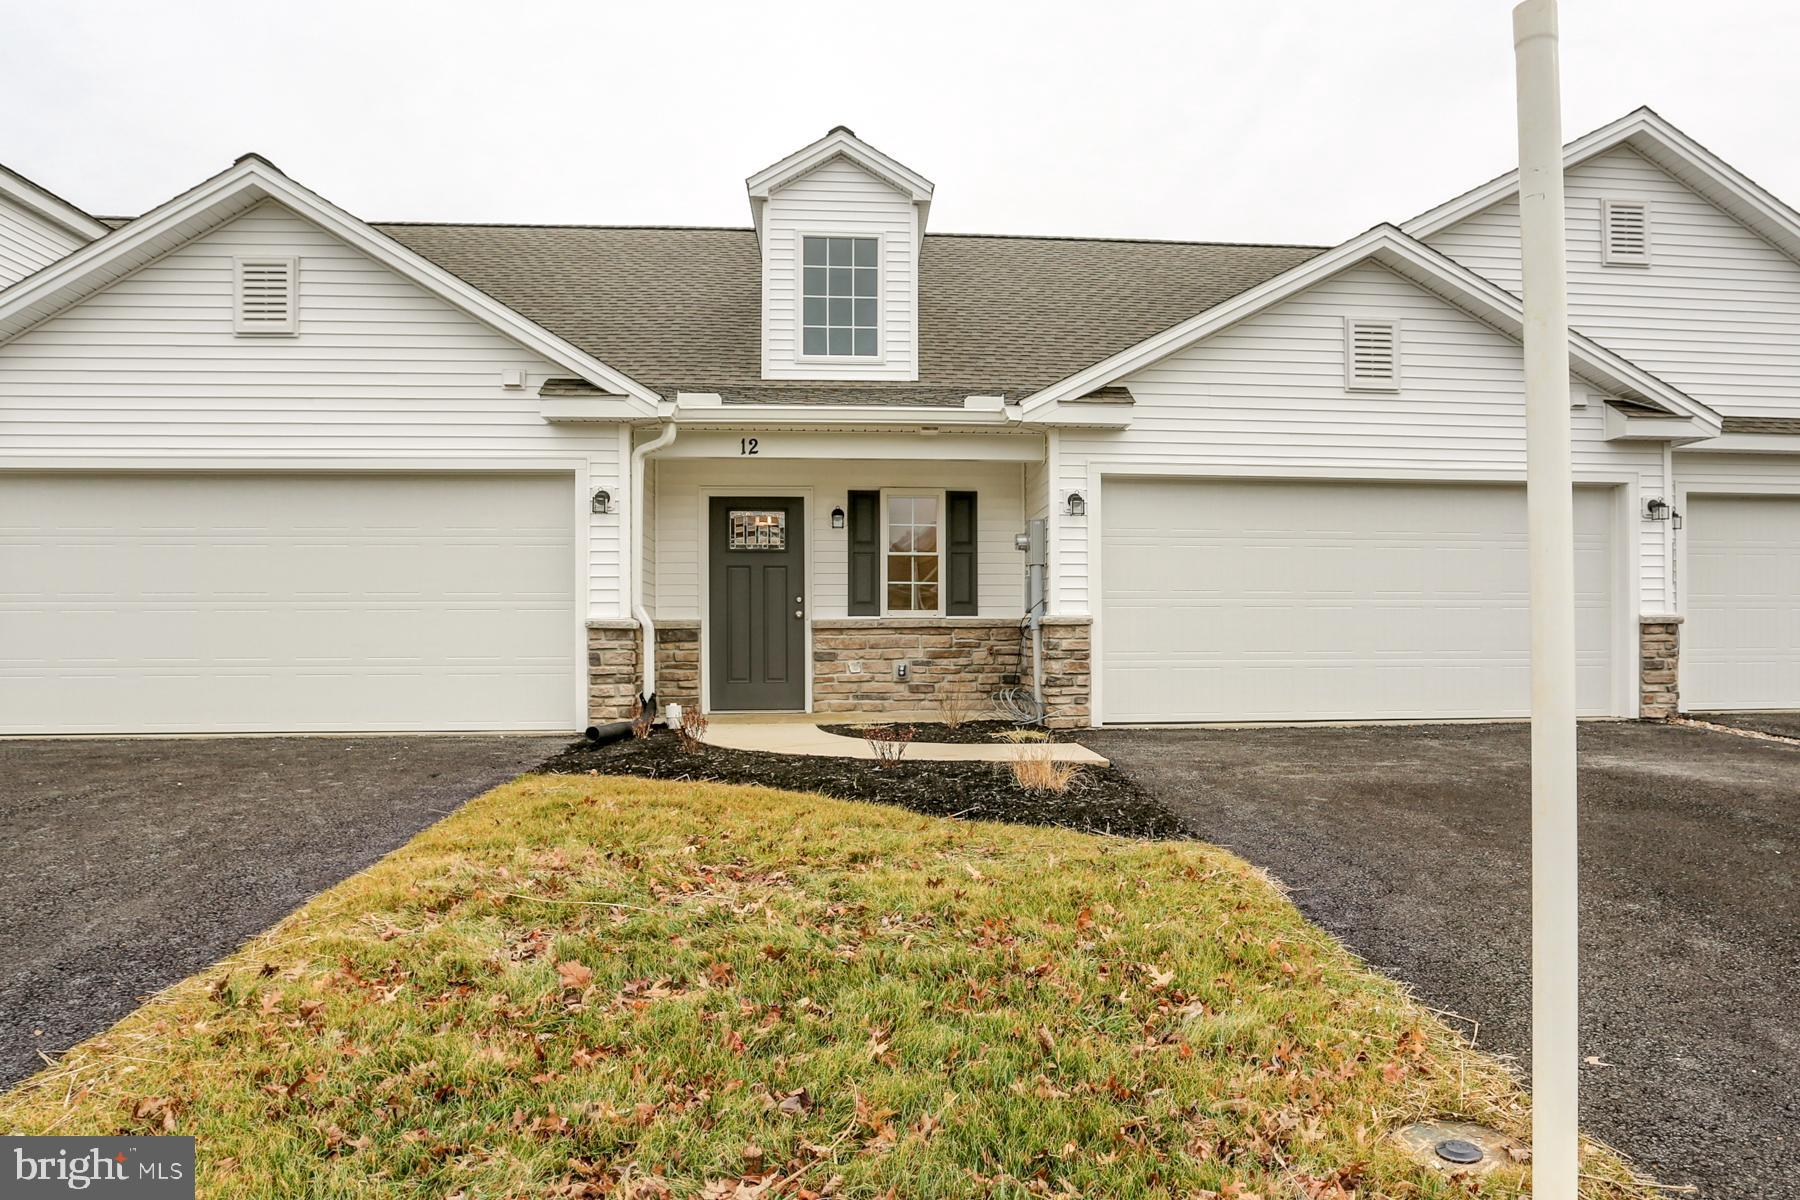 12 GROUP COURT, MOUNT HOLLY SPRINGS, PA 17065